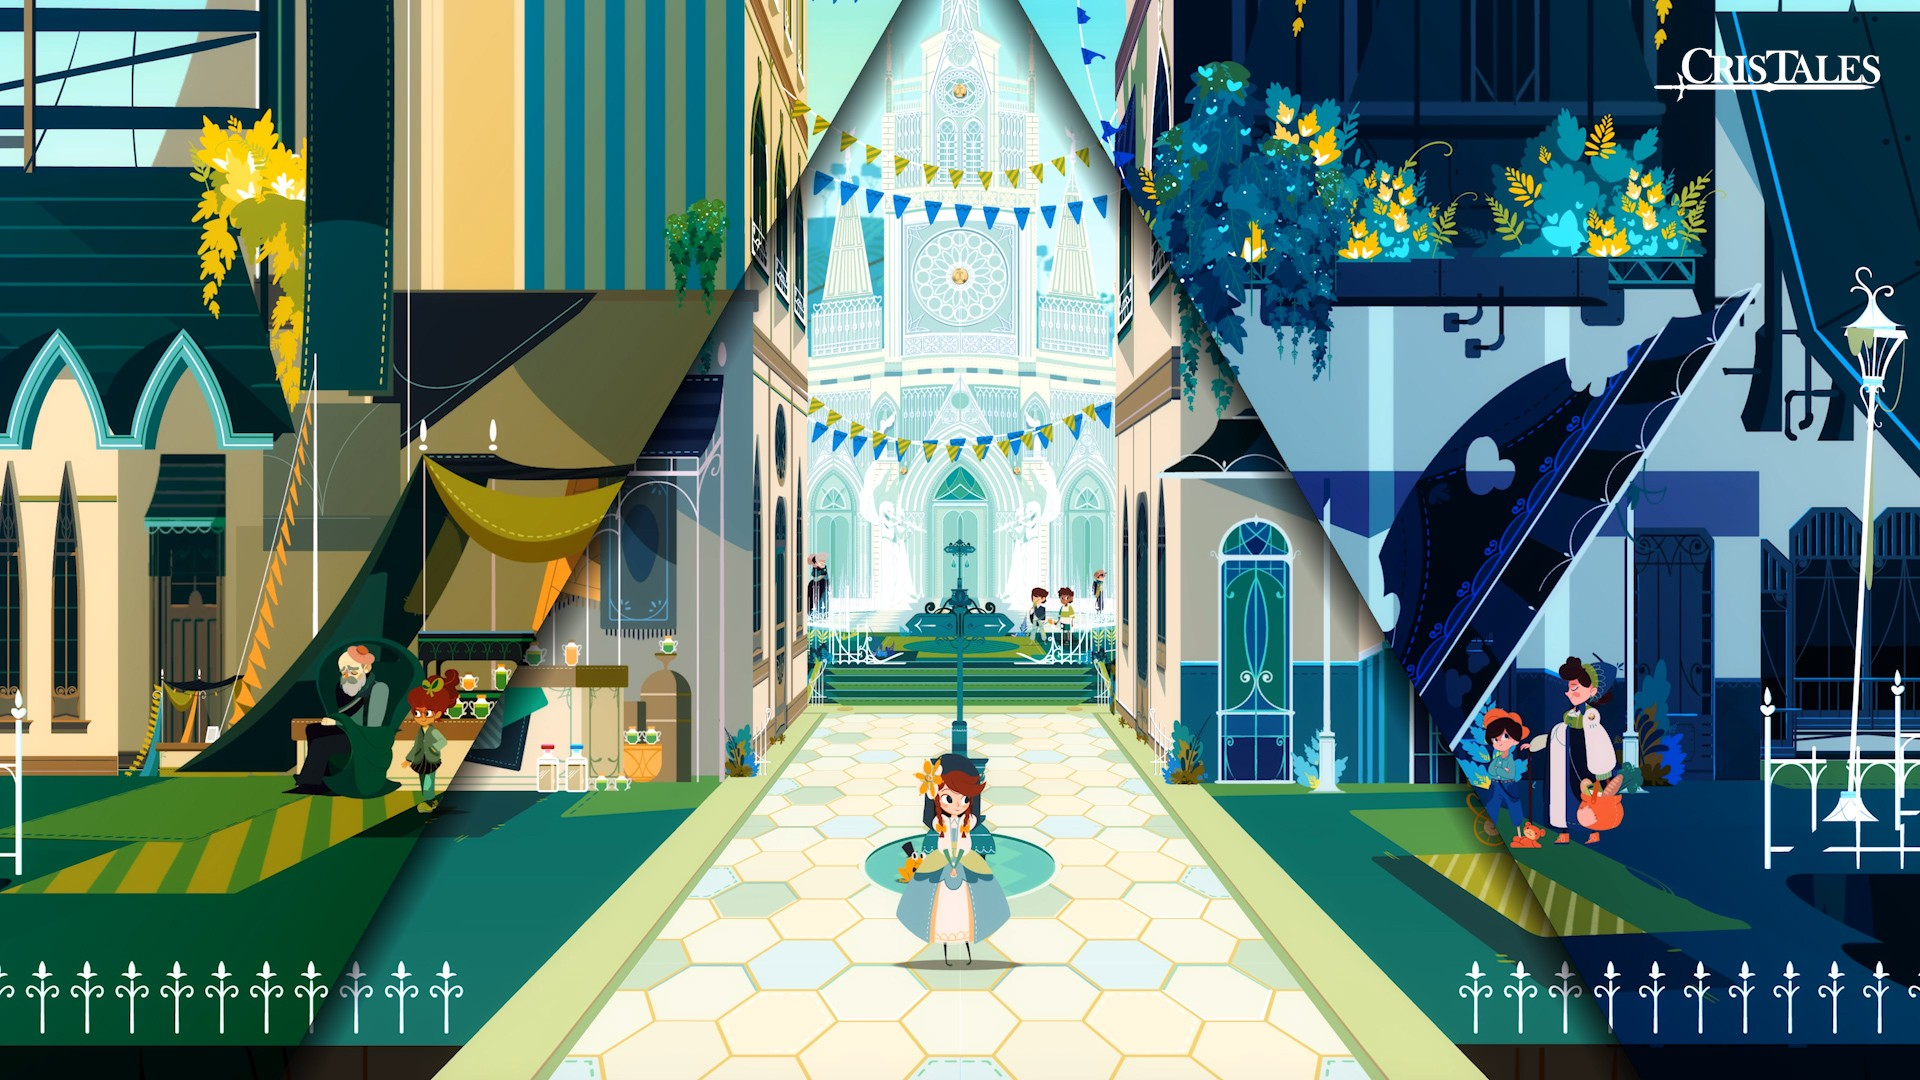 cris tales, dreams uncorporated, syck, modus games us, north america,europe, release date, gameplay, features, price,pre-order now, ps4, playstation 4, xone, xbox one, switch, nintendo switch